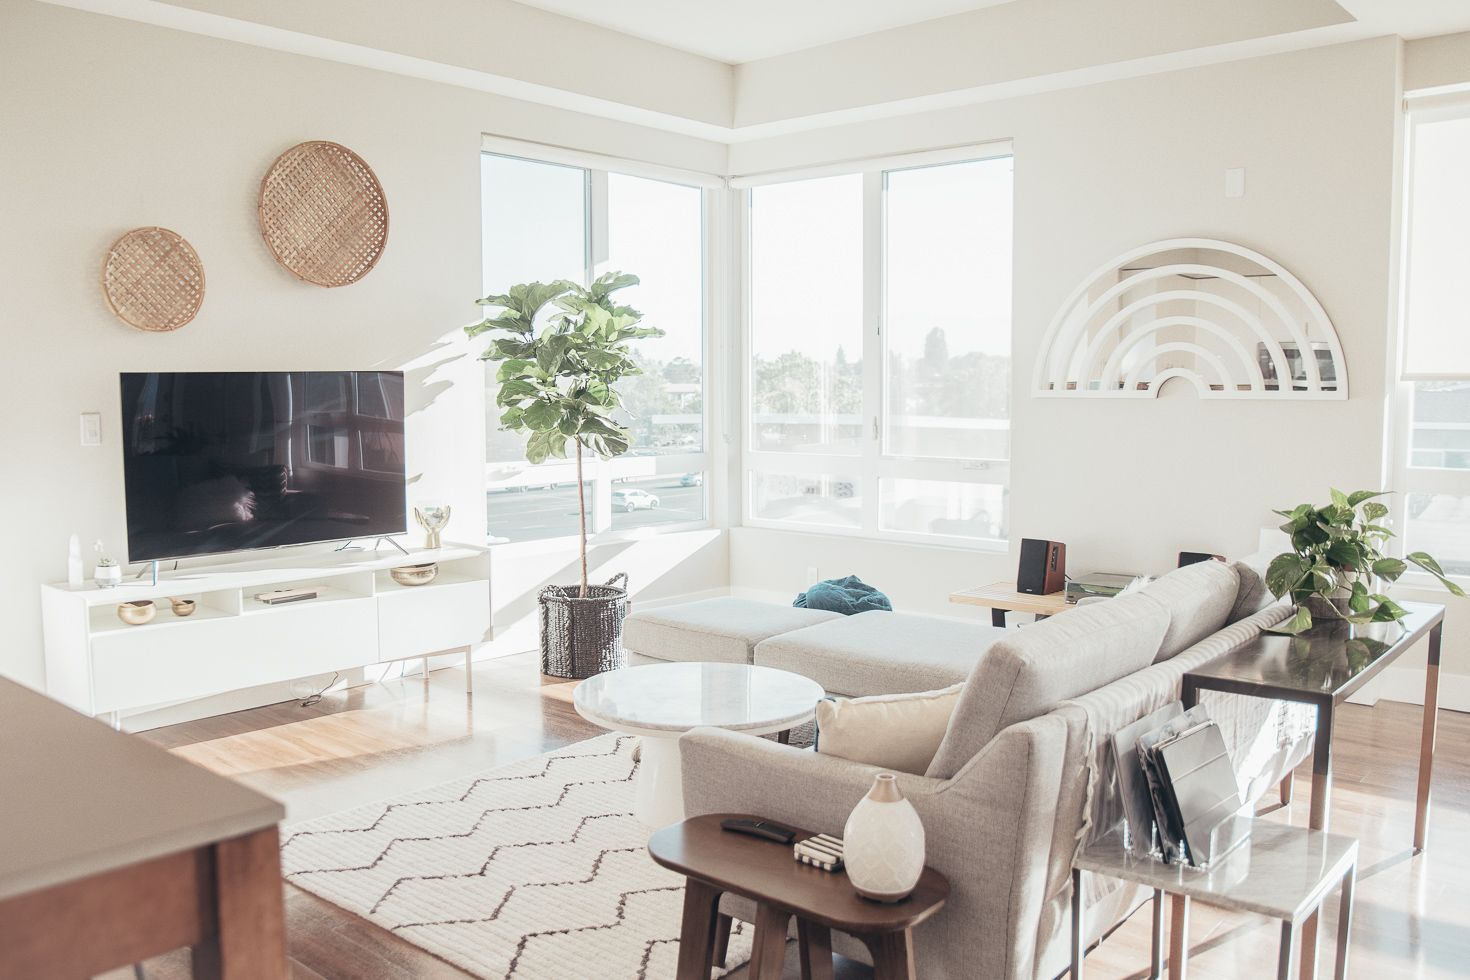 Apartment Tour Youtube 2018 Rustic Living Room Sectional Living Room Decor Home Youtube decorating living room